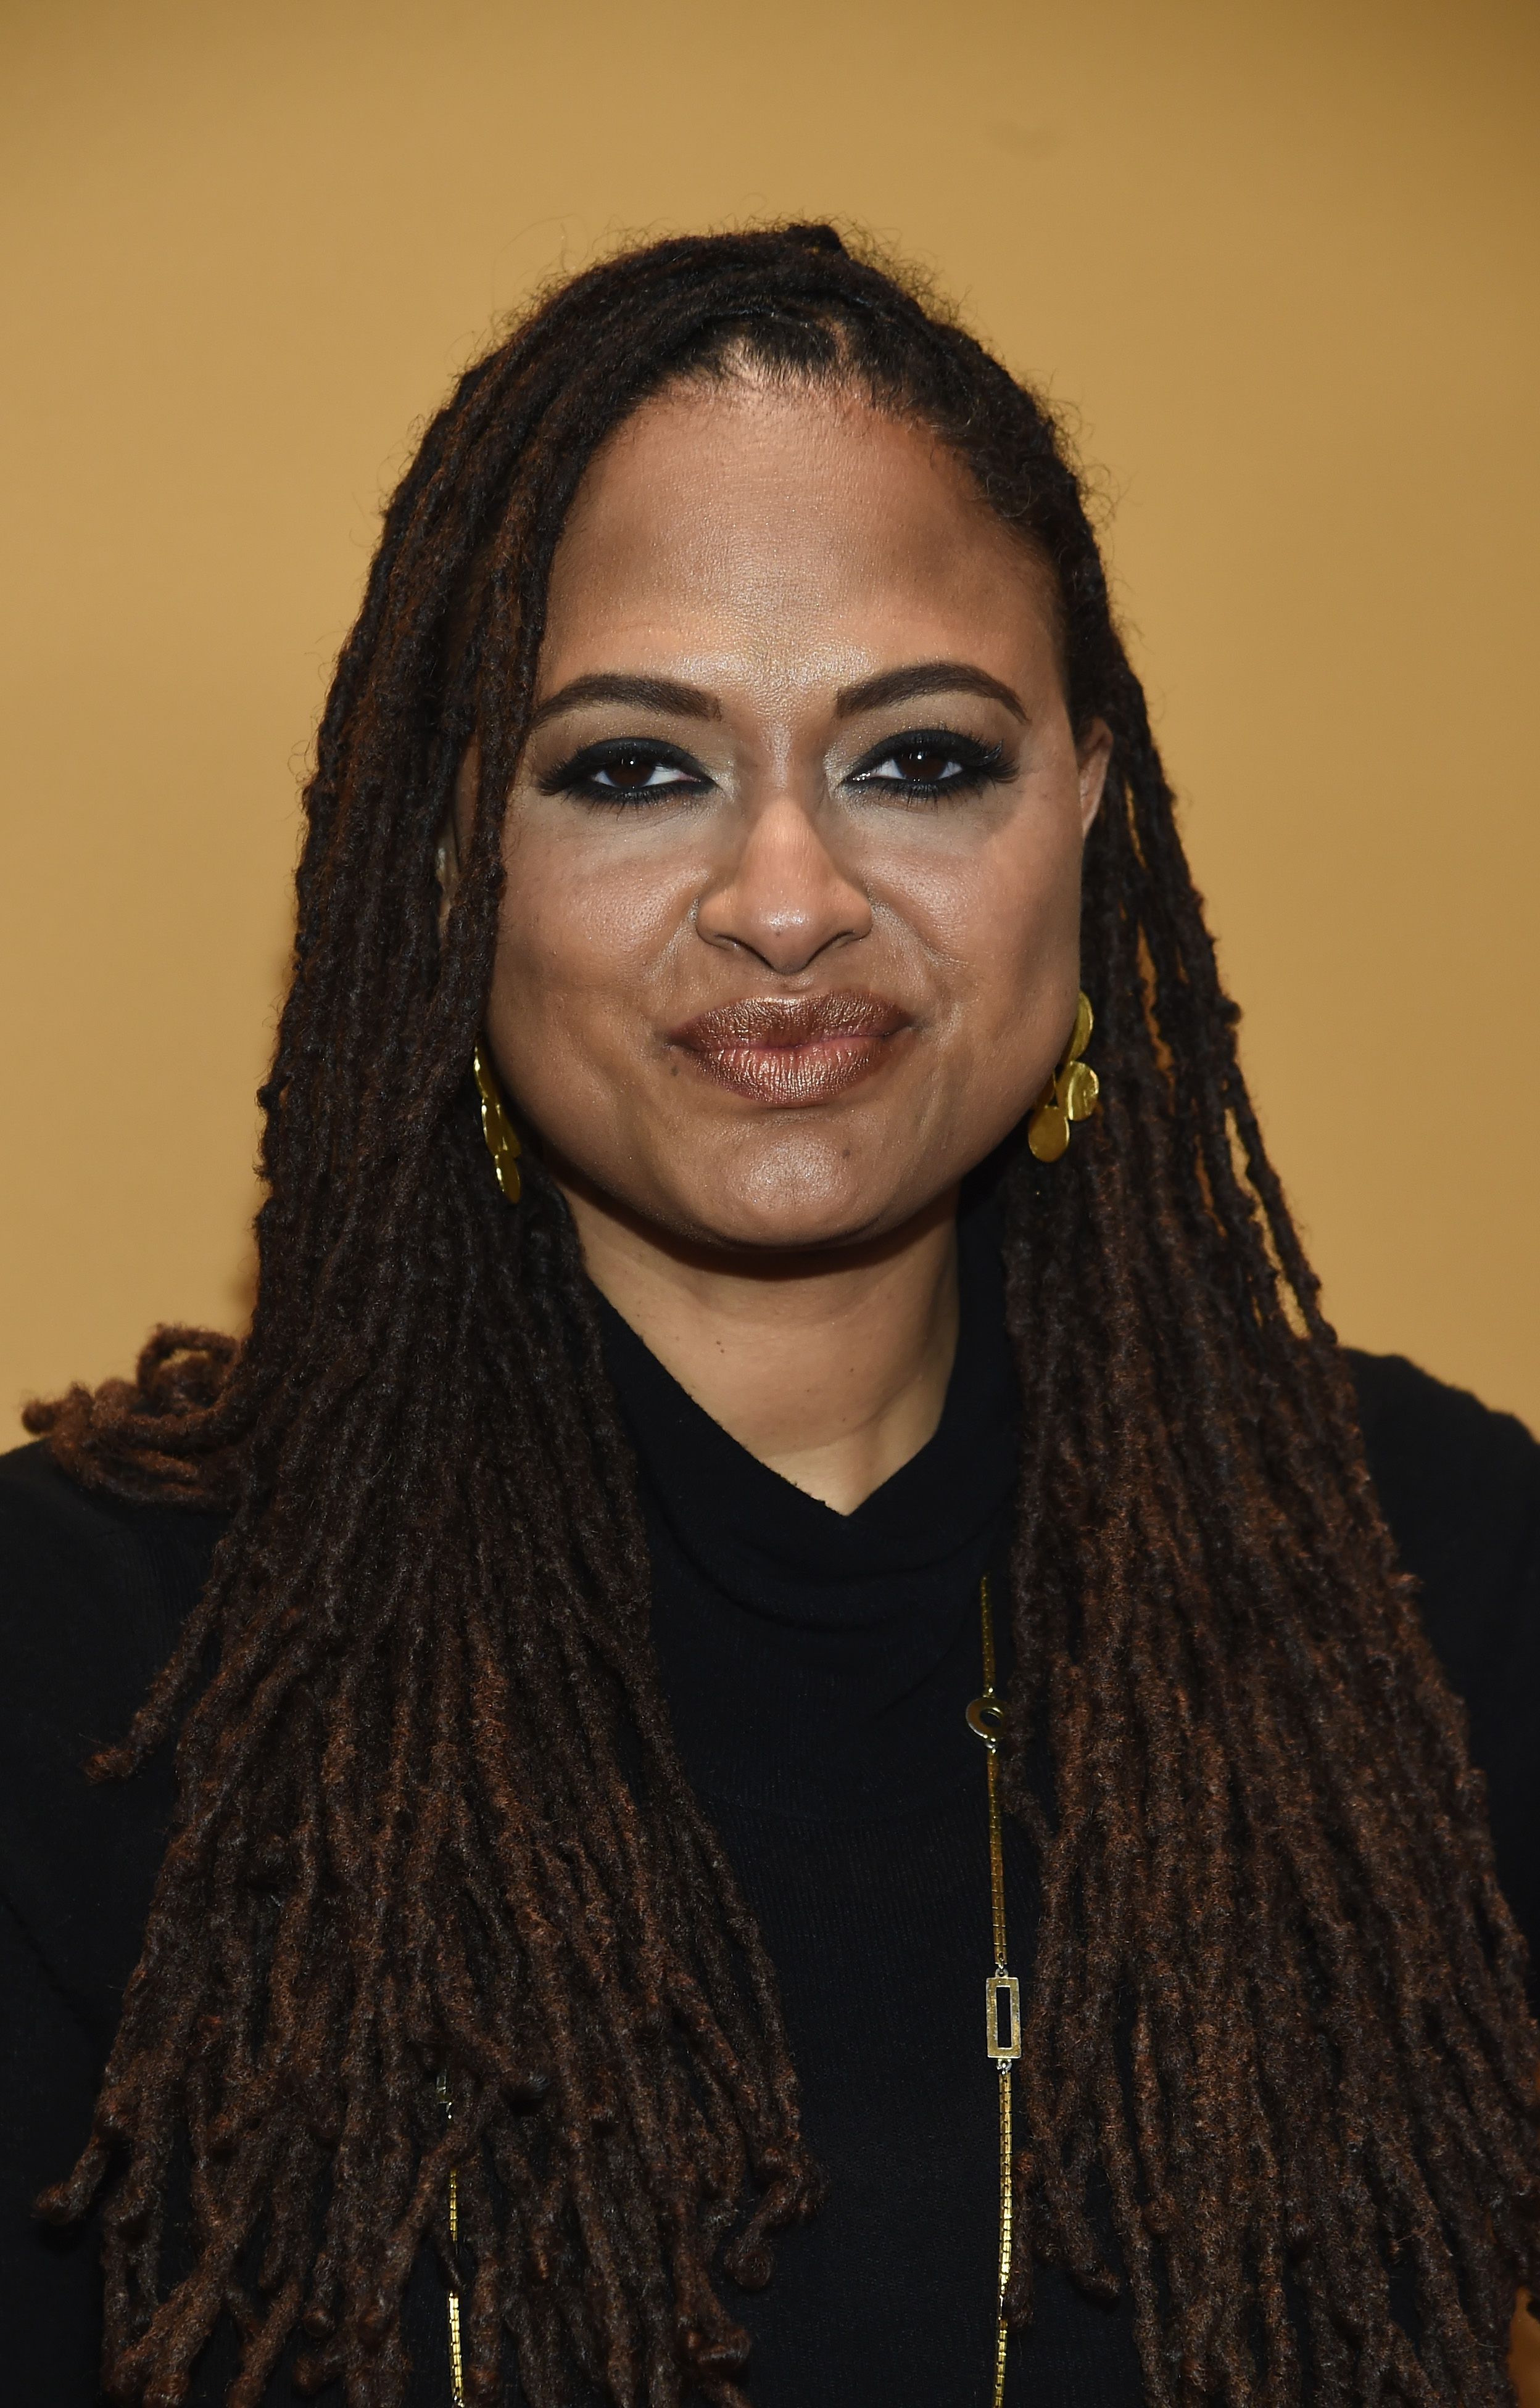 Ava DuVernay attends the  Belief  premiere in New York City on Oct. 14, 2015.